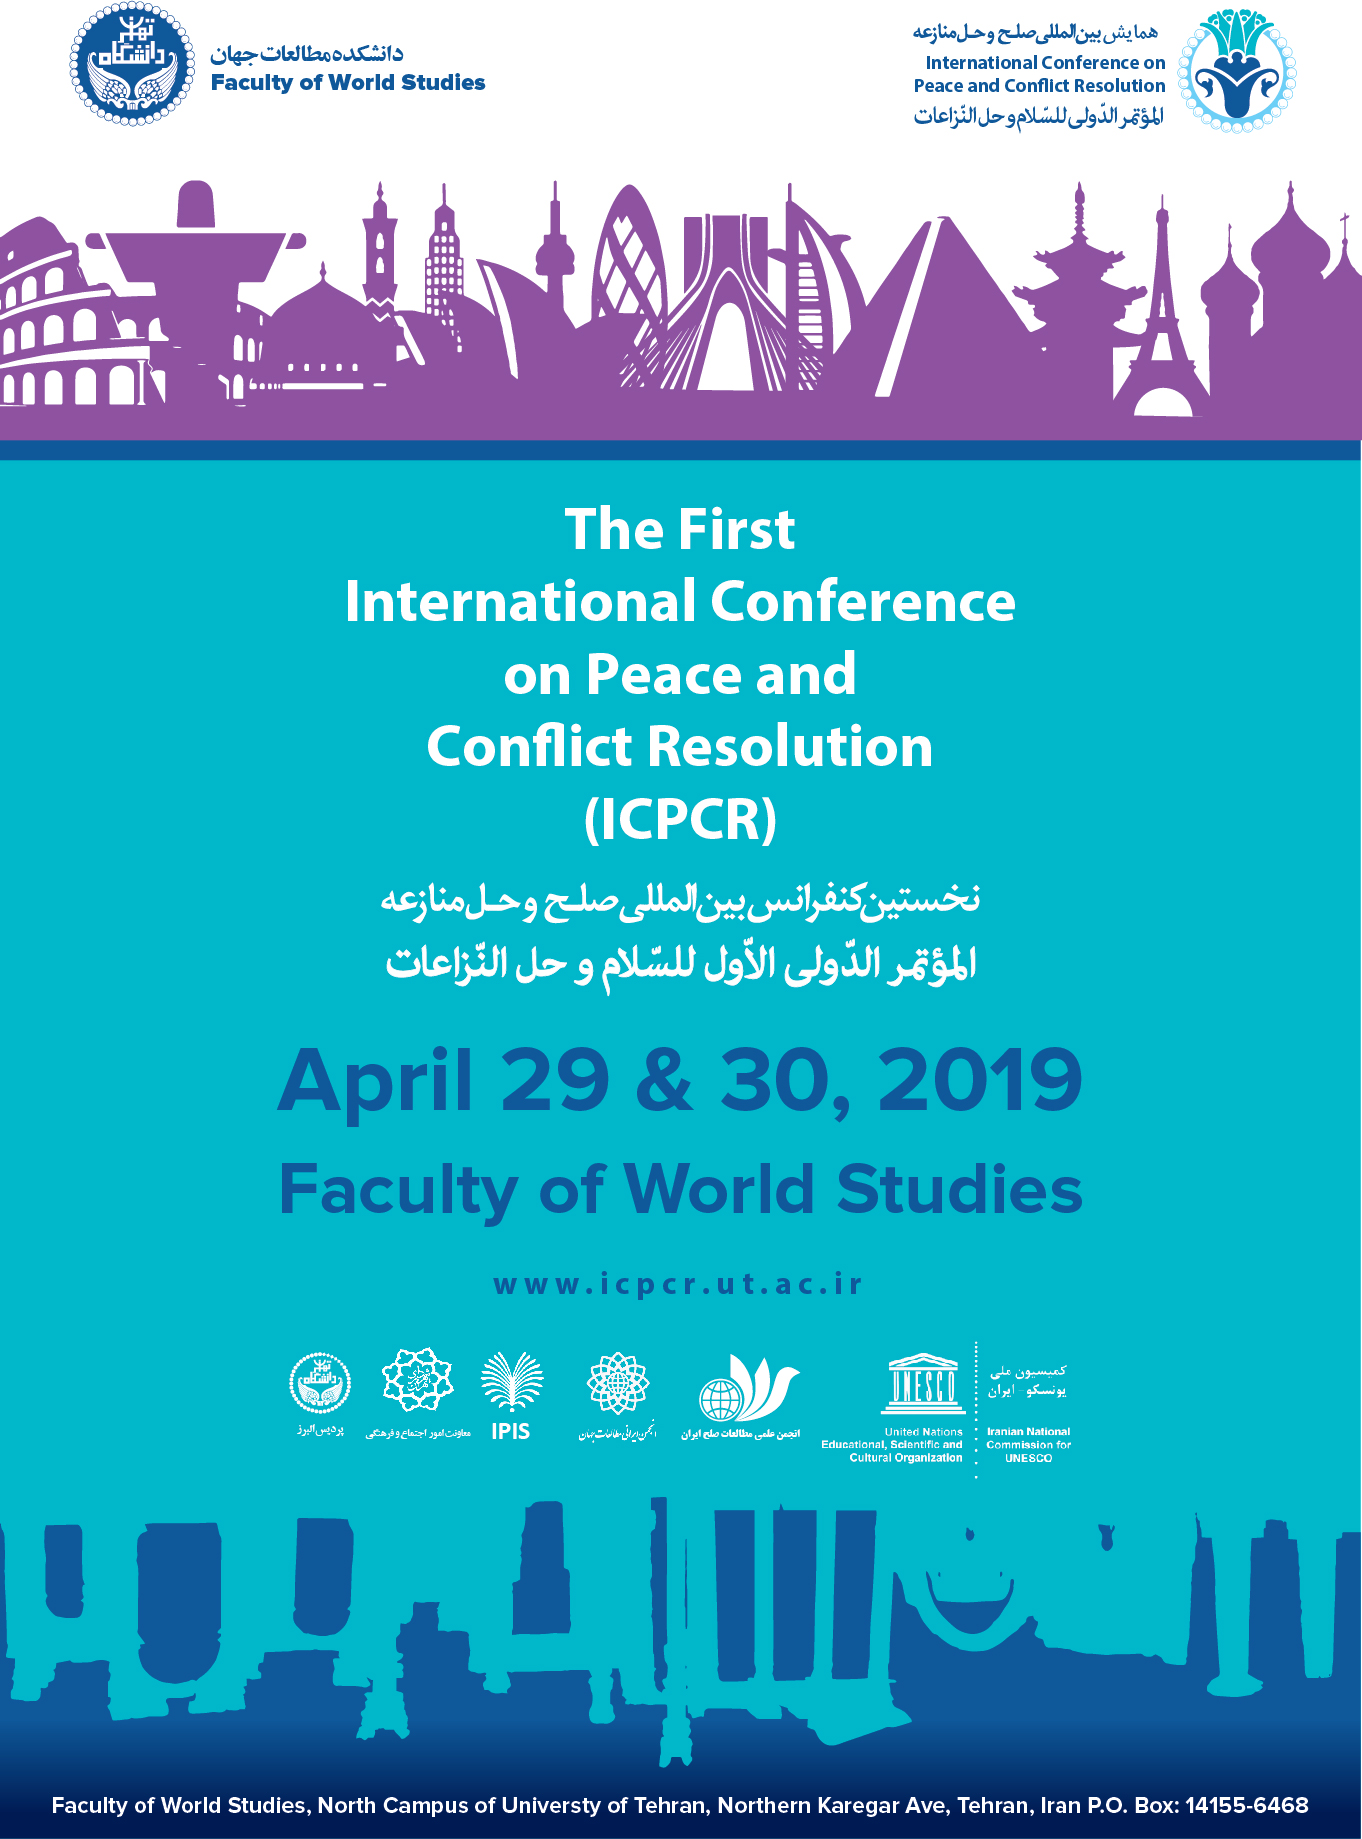 Scientific sessions of the first day of 1st international conference on peace and conflict resolution was held on April 29 th, 2019 at the Faculty of World Studies, University of Tehran.